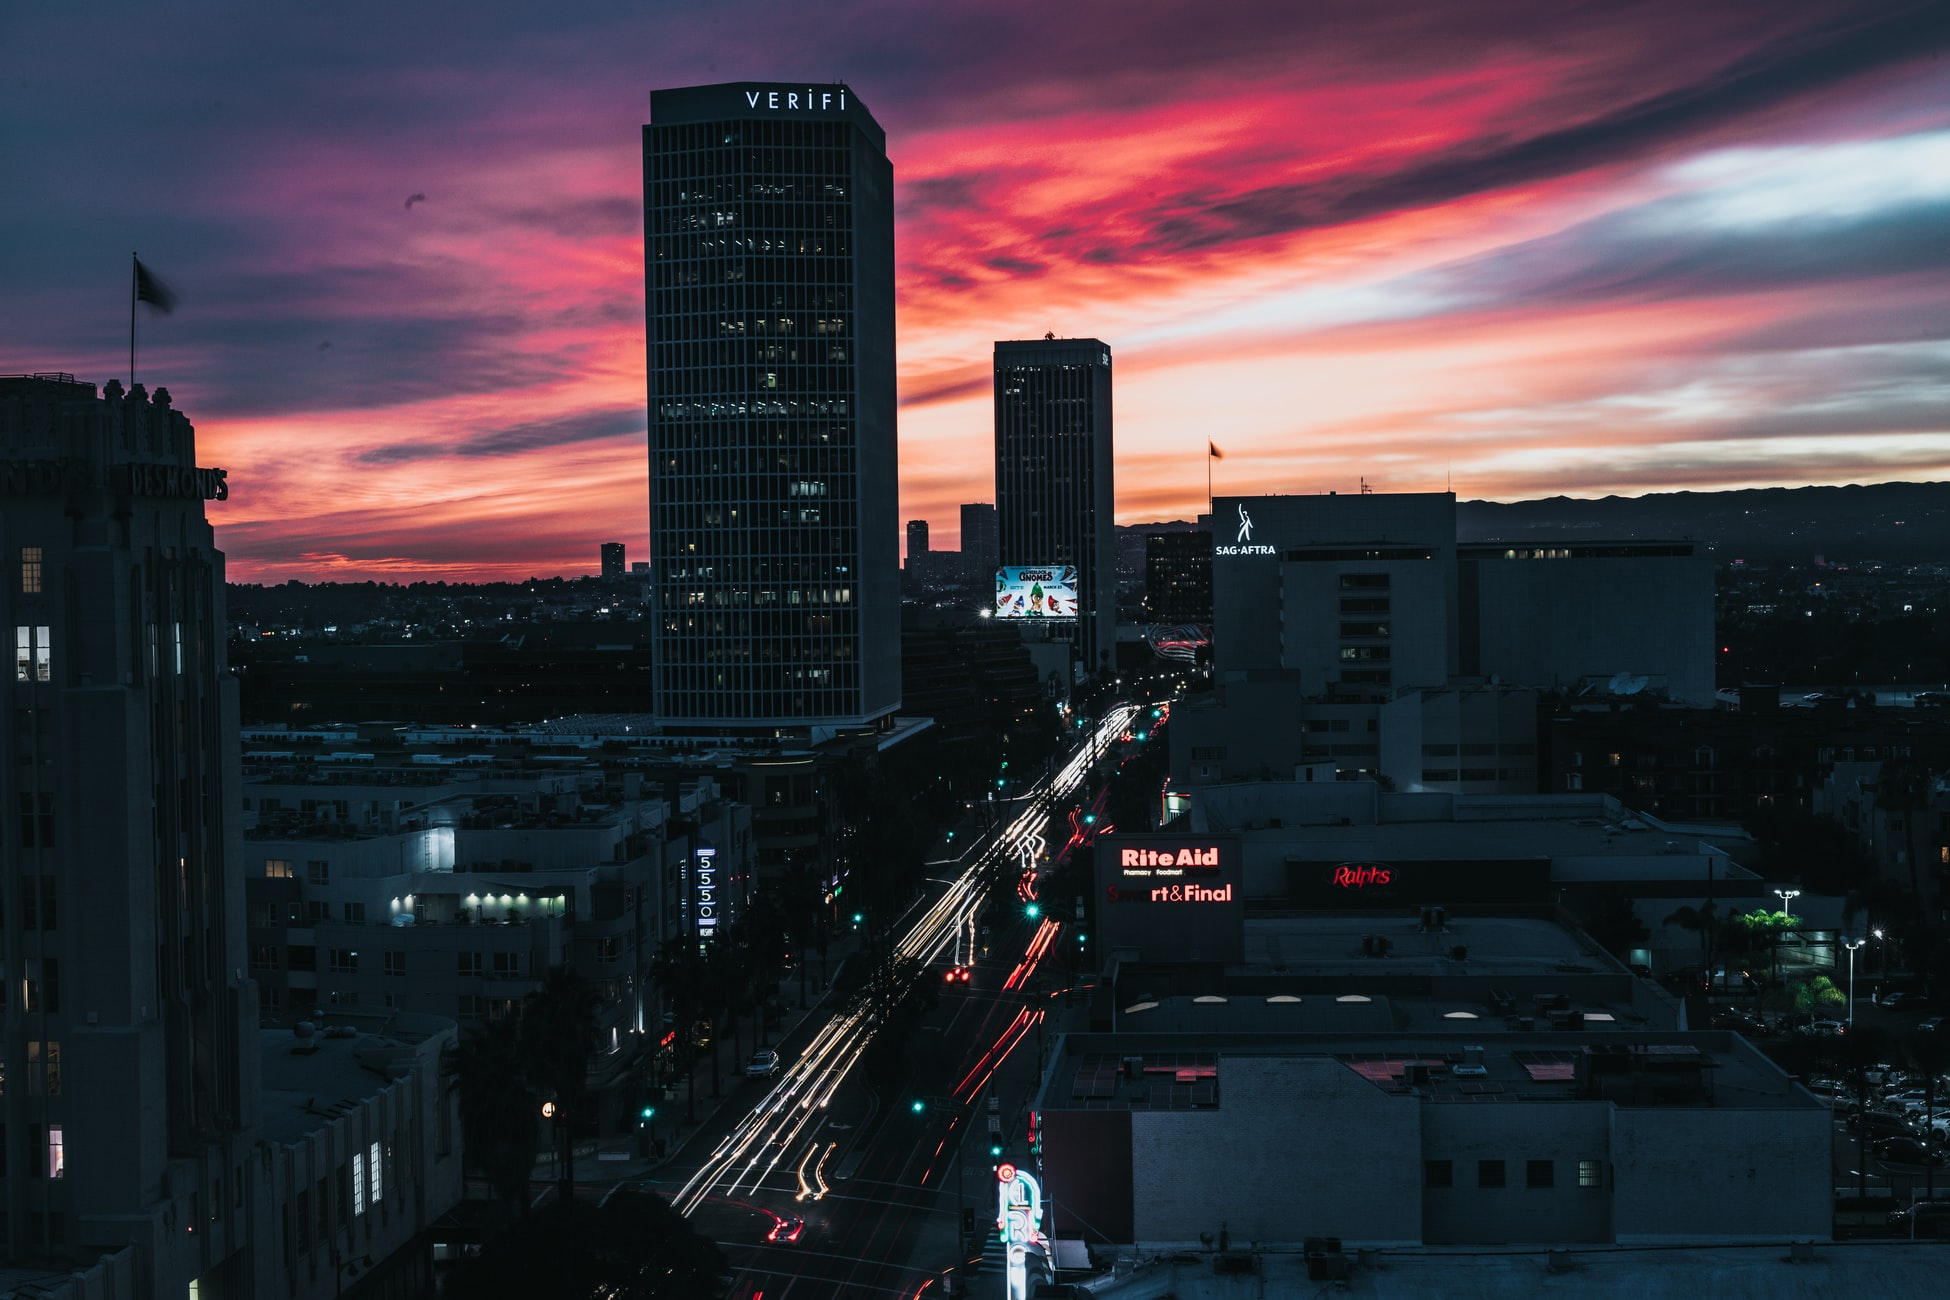 sunset over West Hollywood, CA